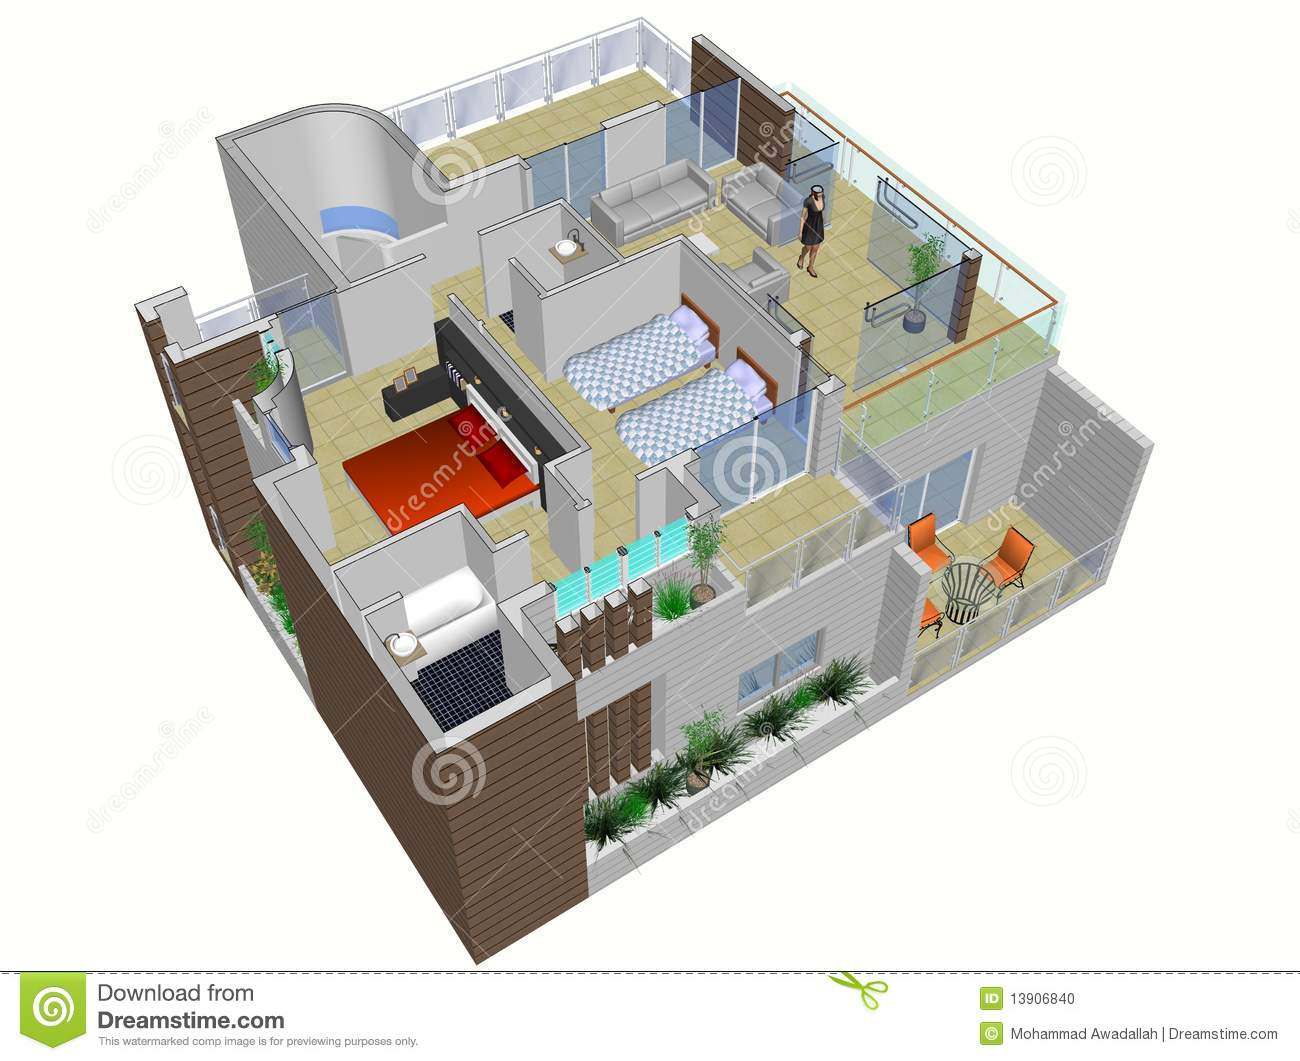 Architectural plan of house stock illustration image for Architectural plans